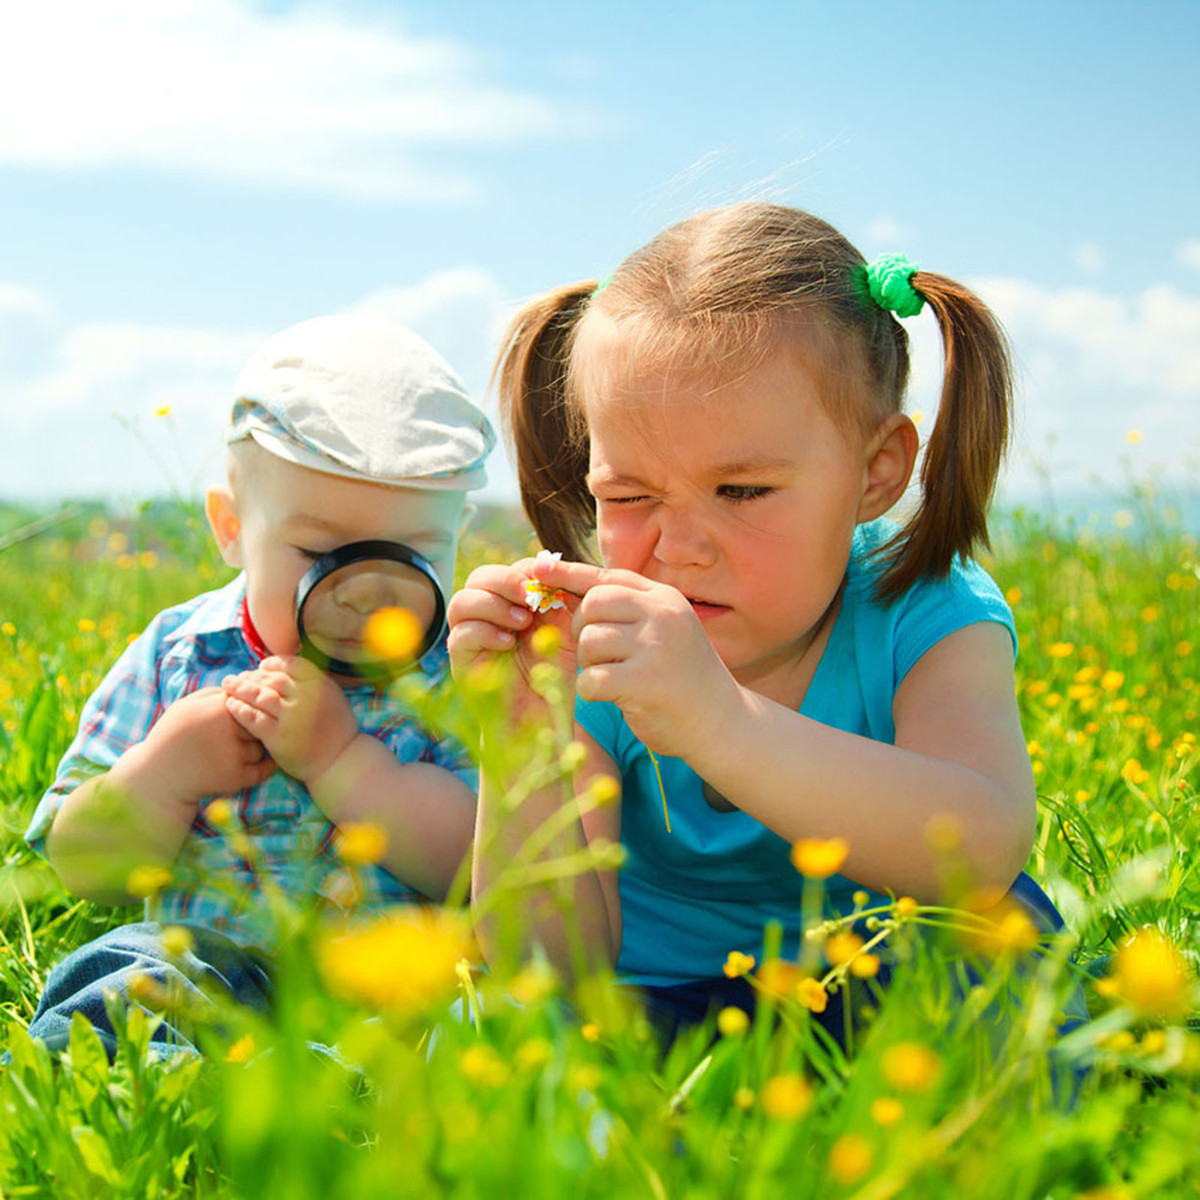 Let Taurus children explore outside.